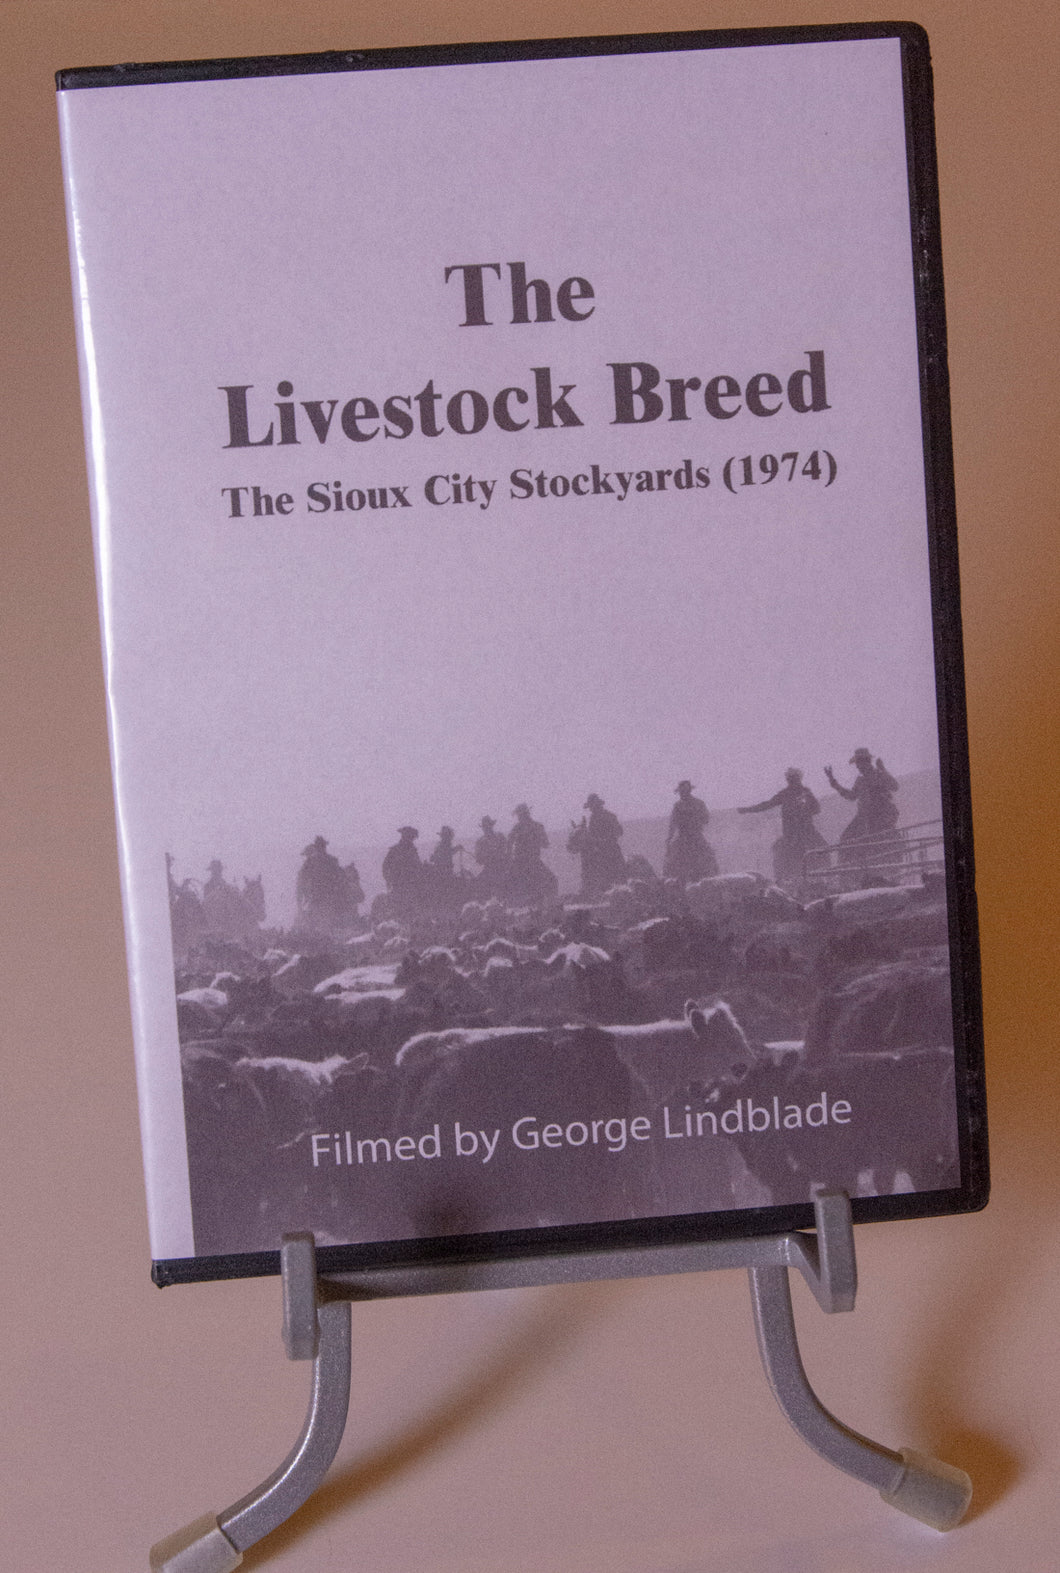 Livestock Breed DVD